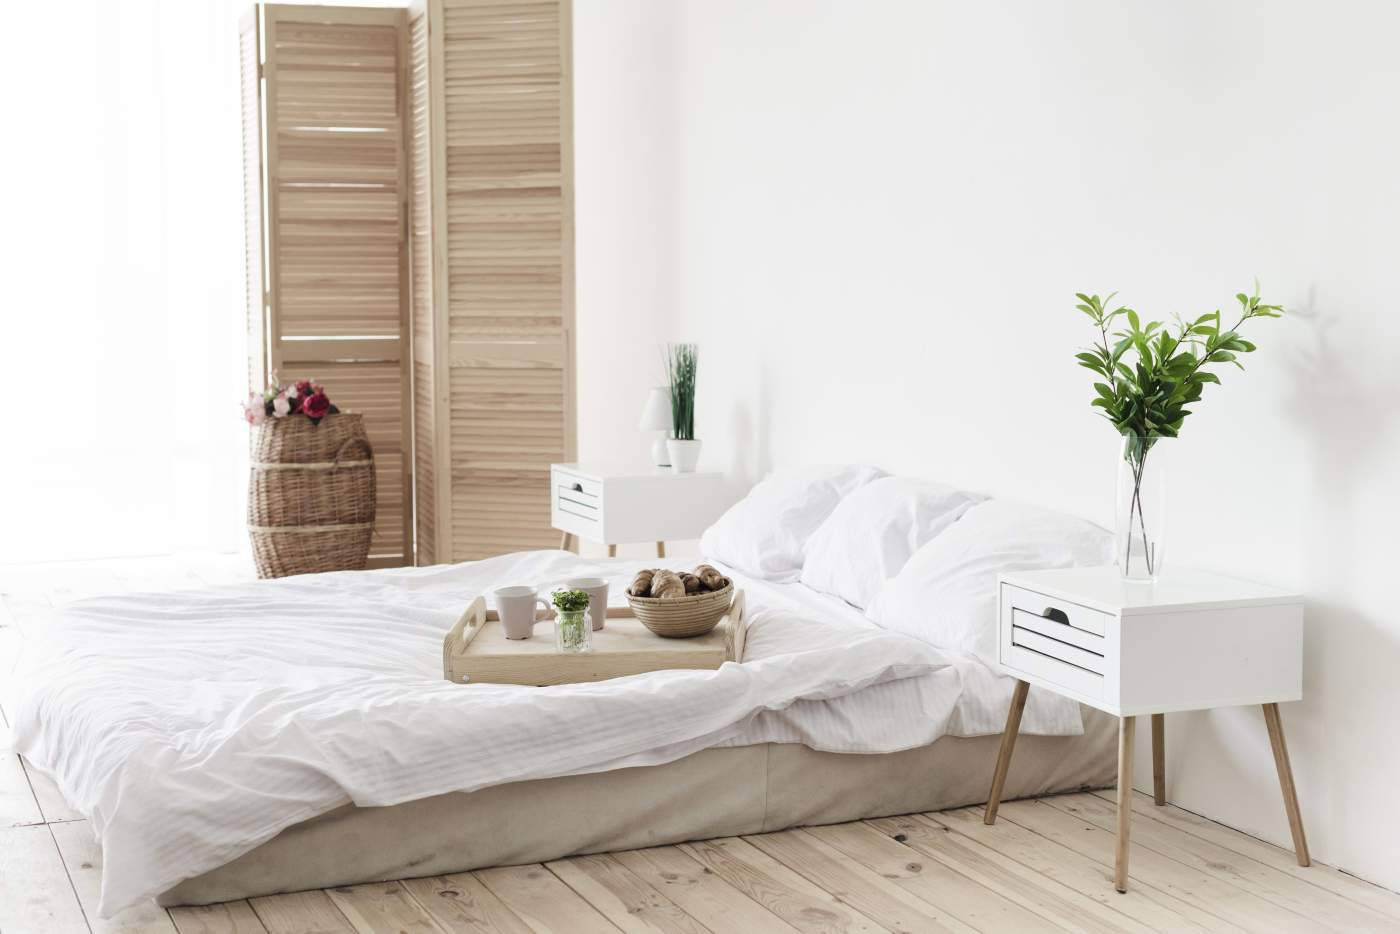 Tray with breakfast on bed in bright bedroom